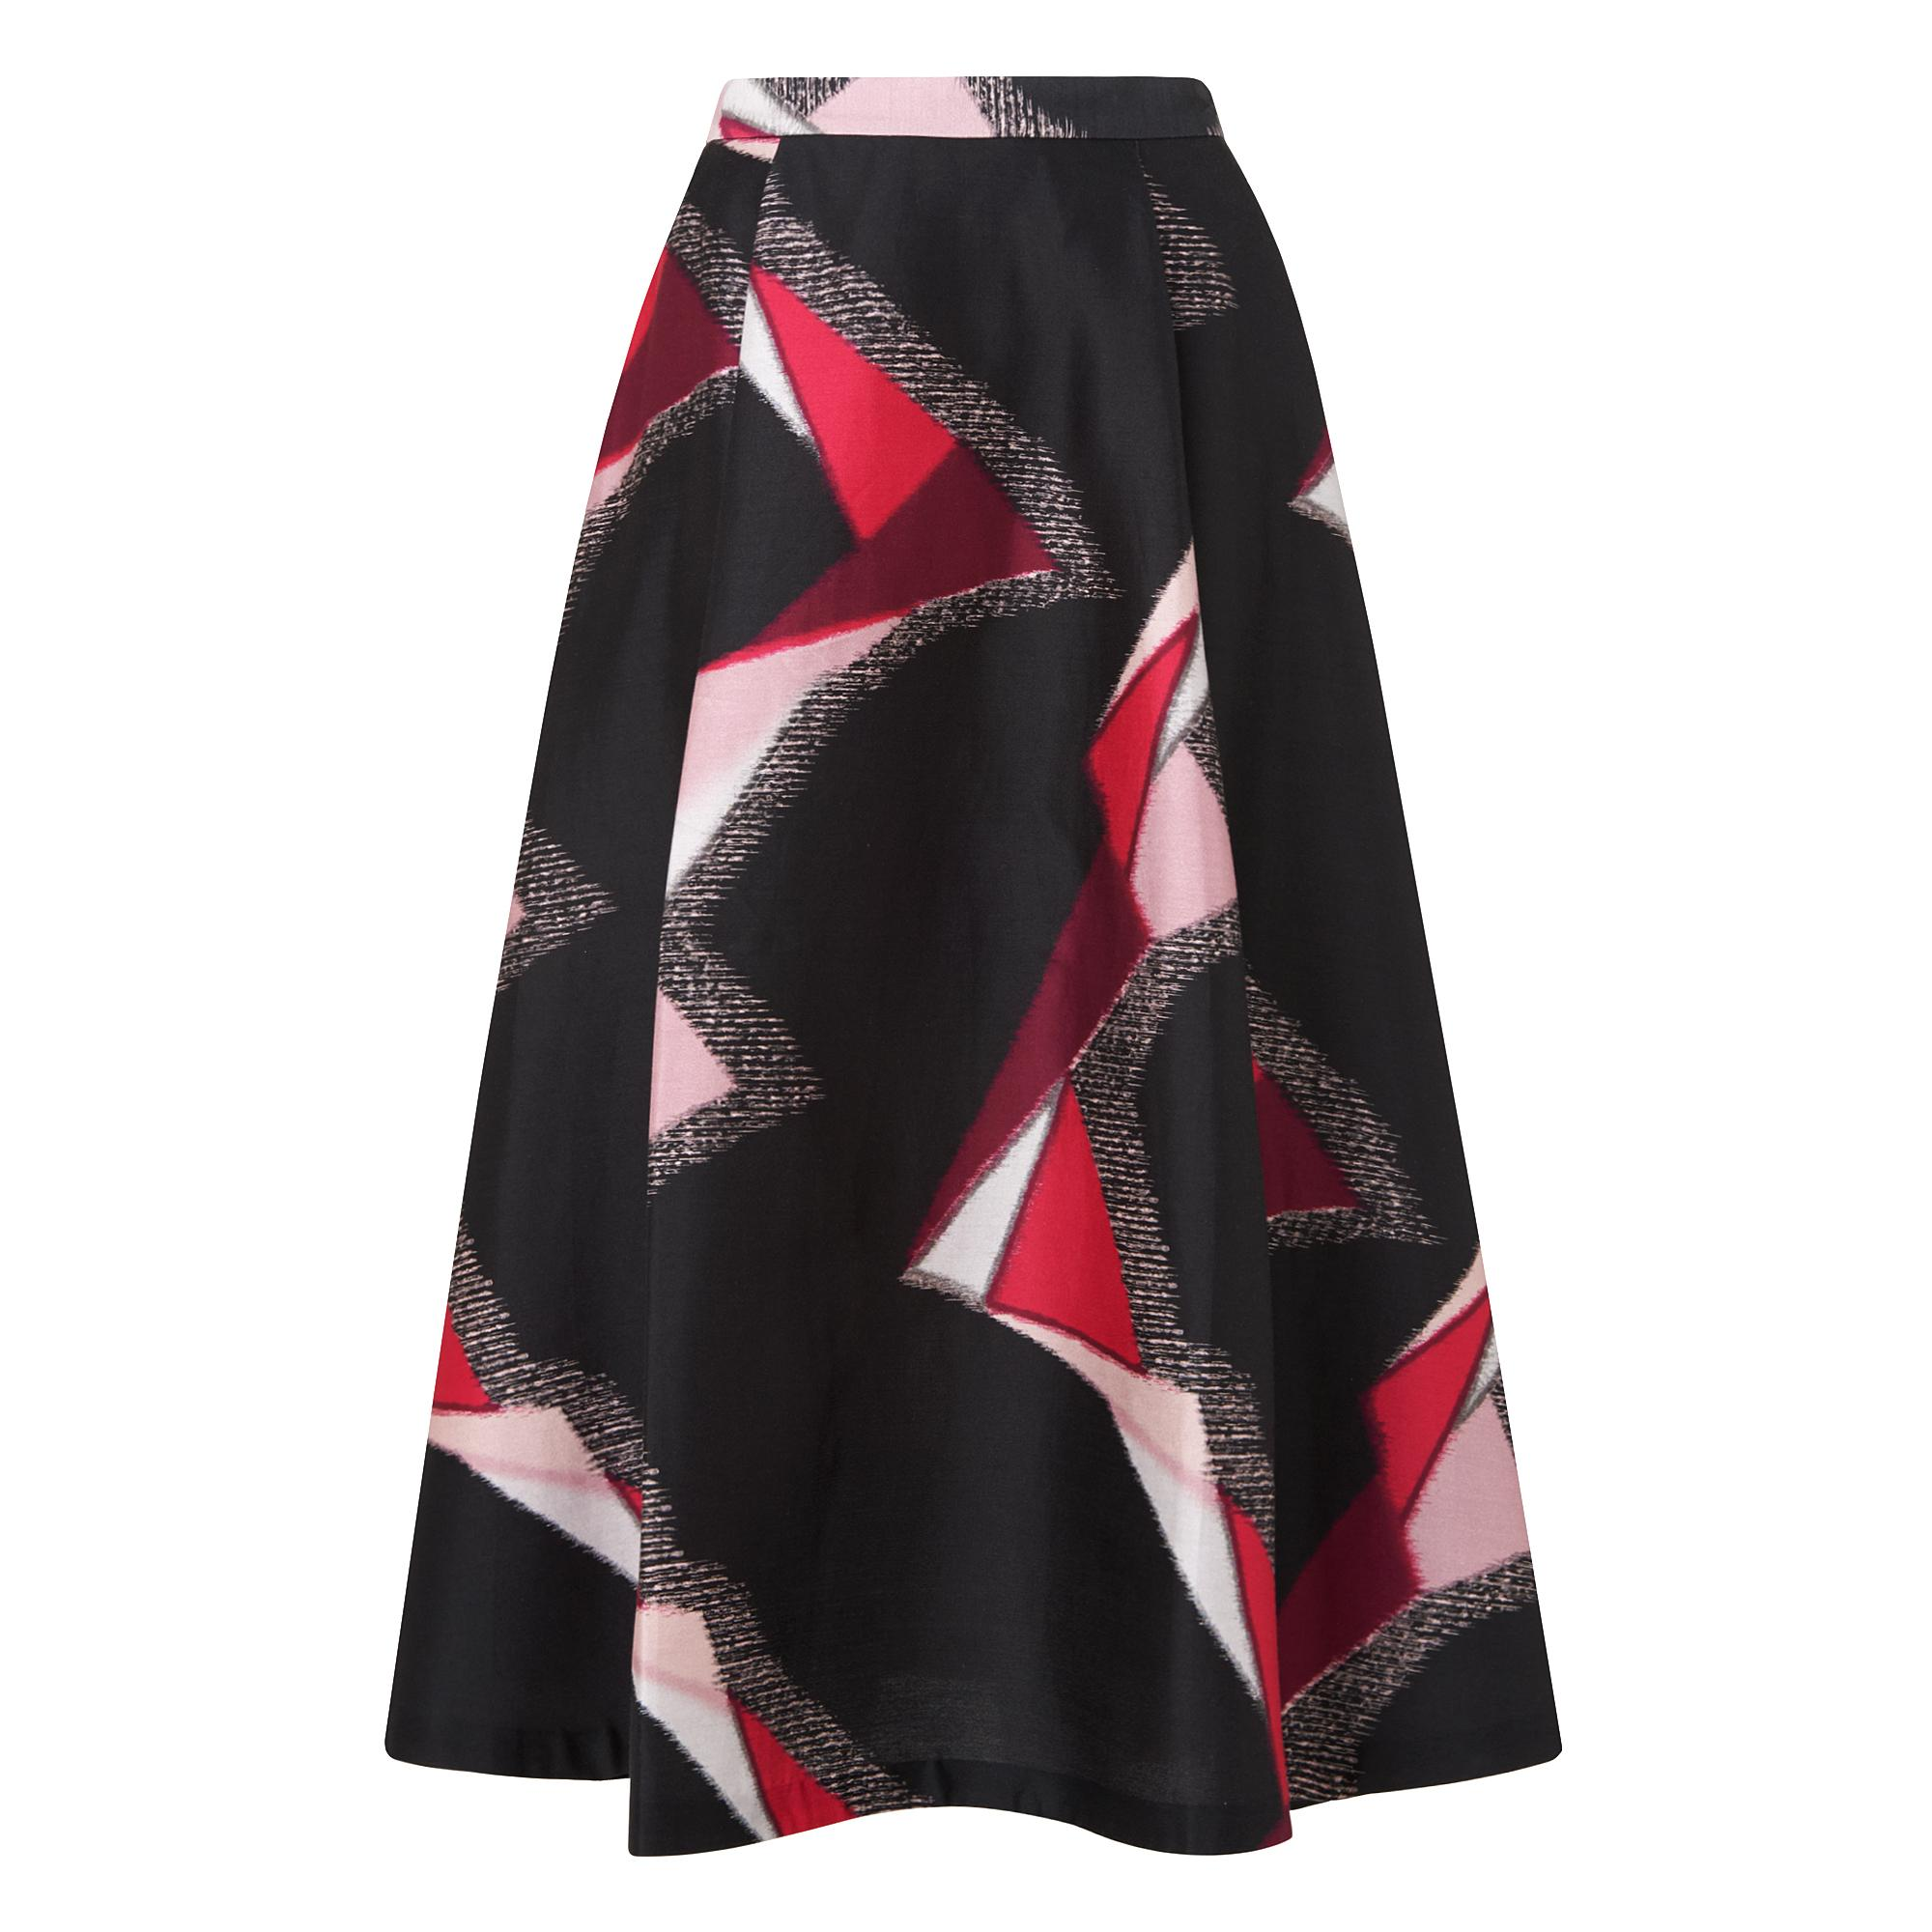 L.K.Bennett Guilia Printed Skirt